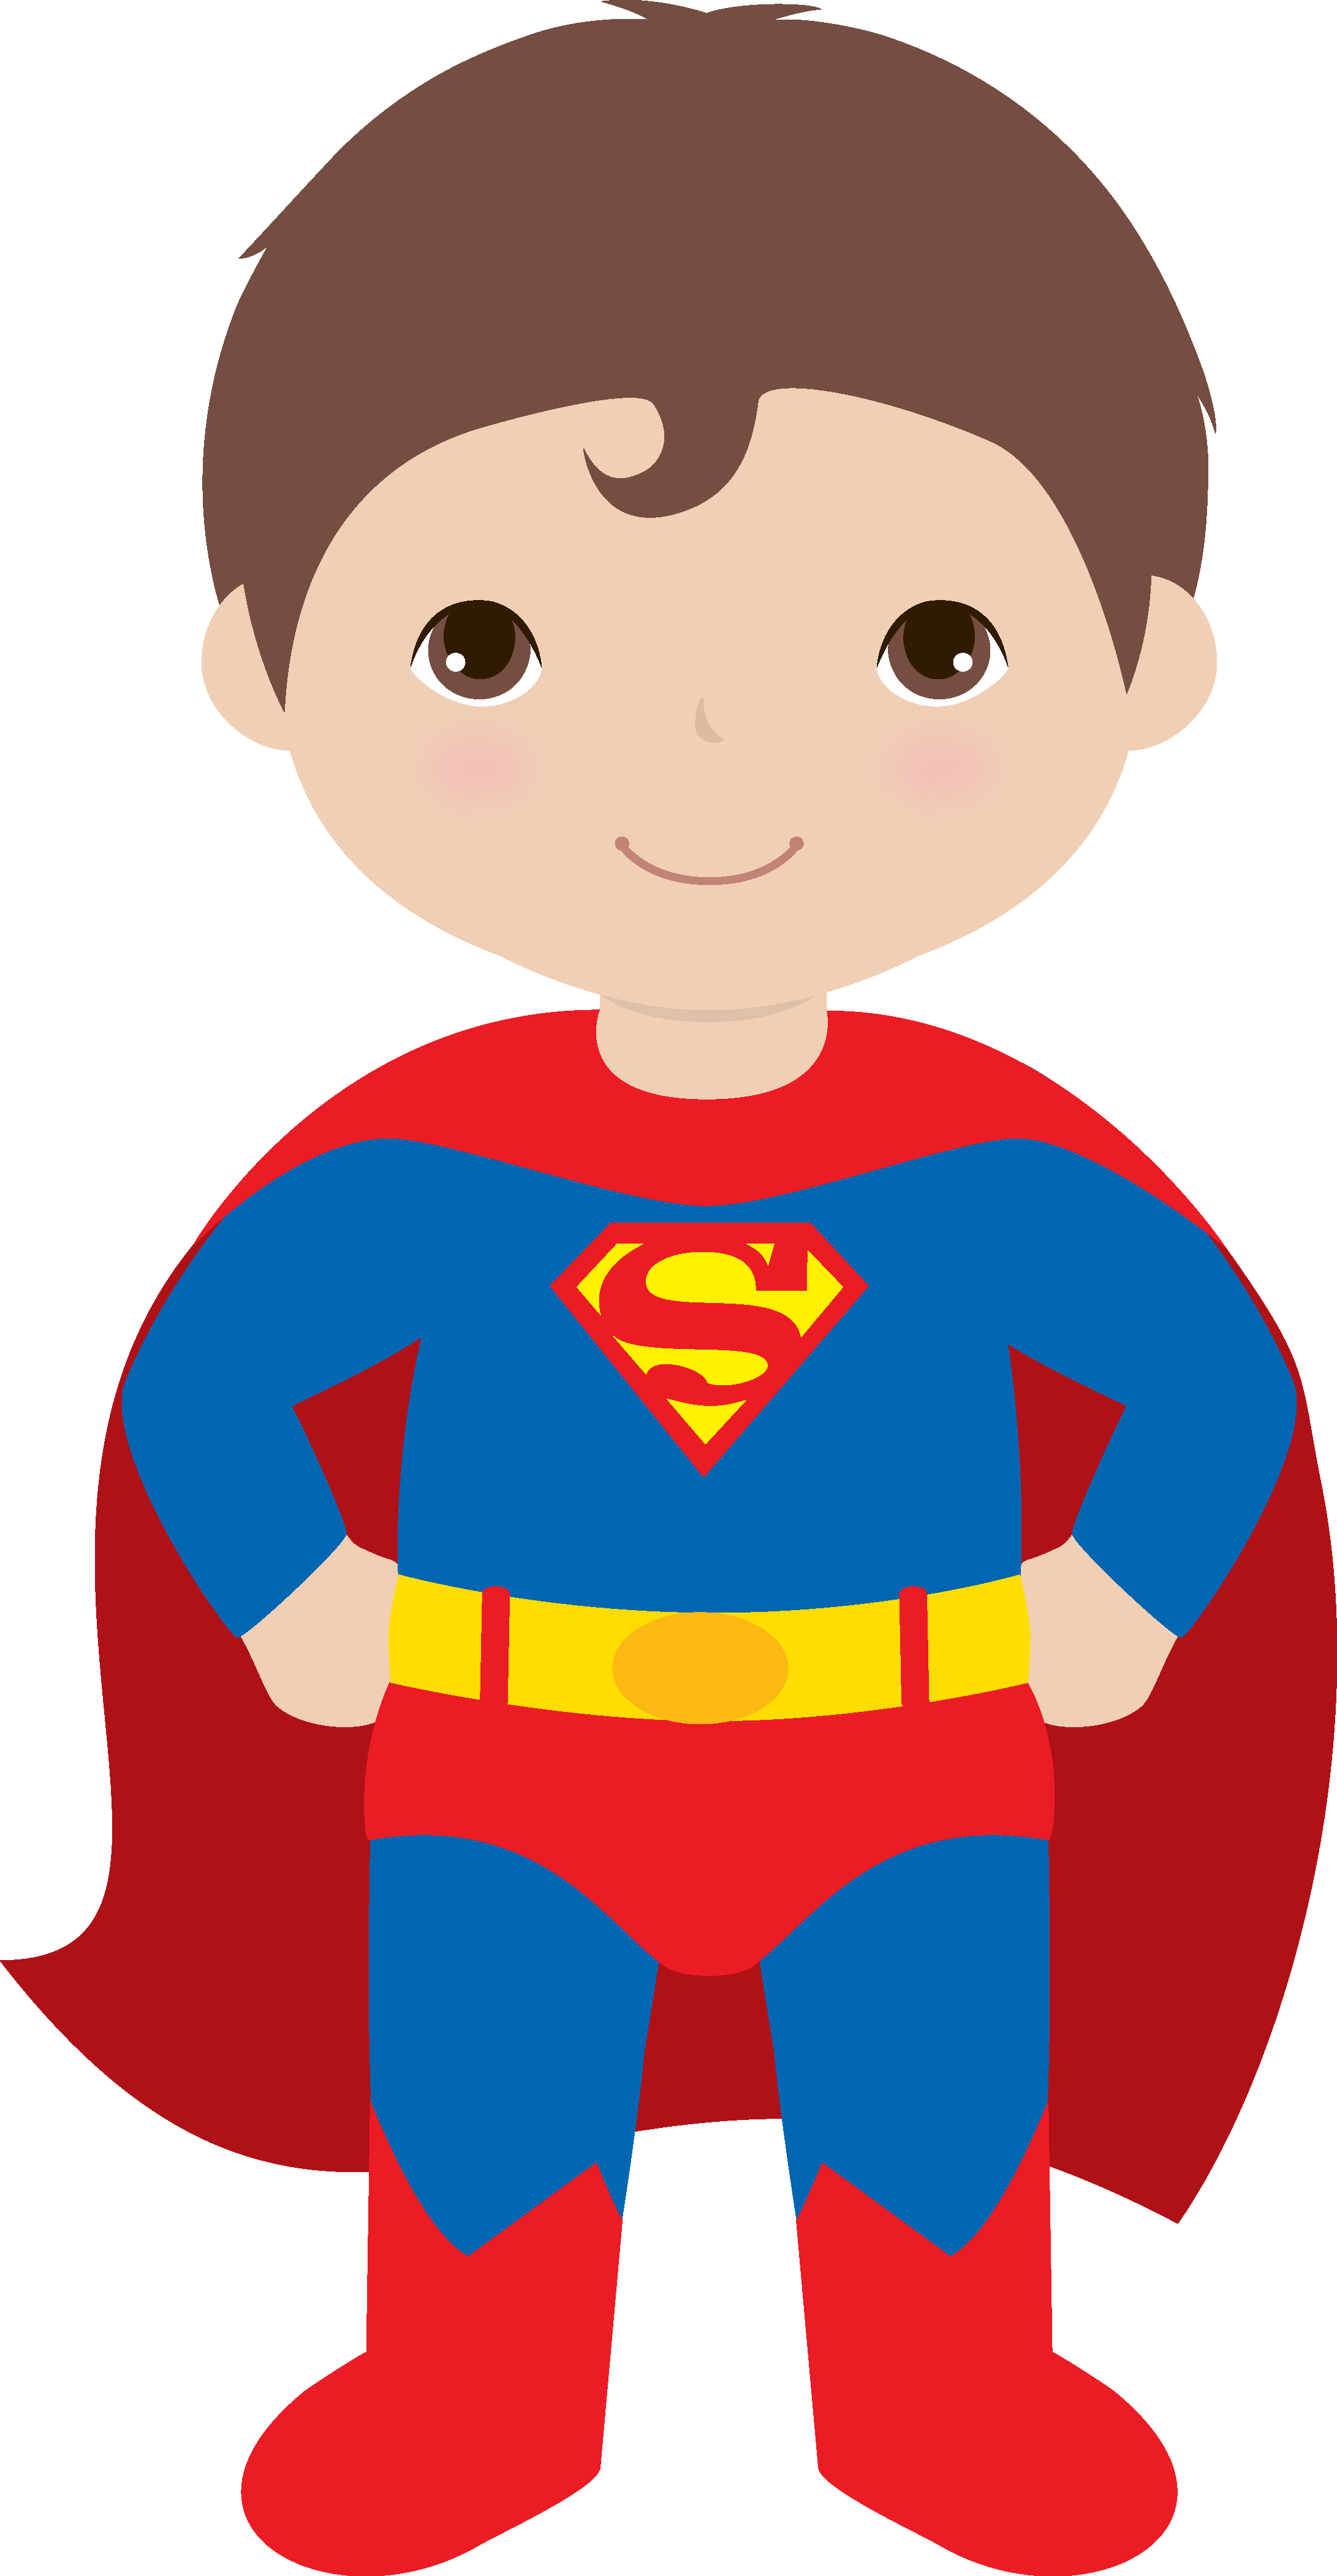 Superman clipart hero Hero Amy Pin Central by